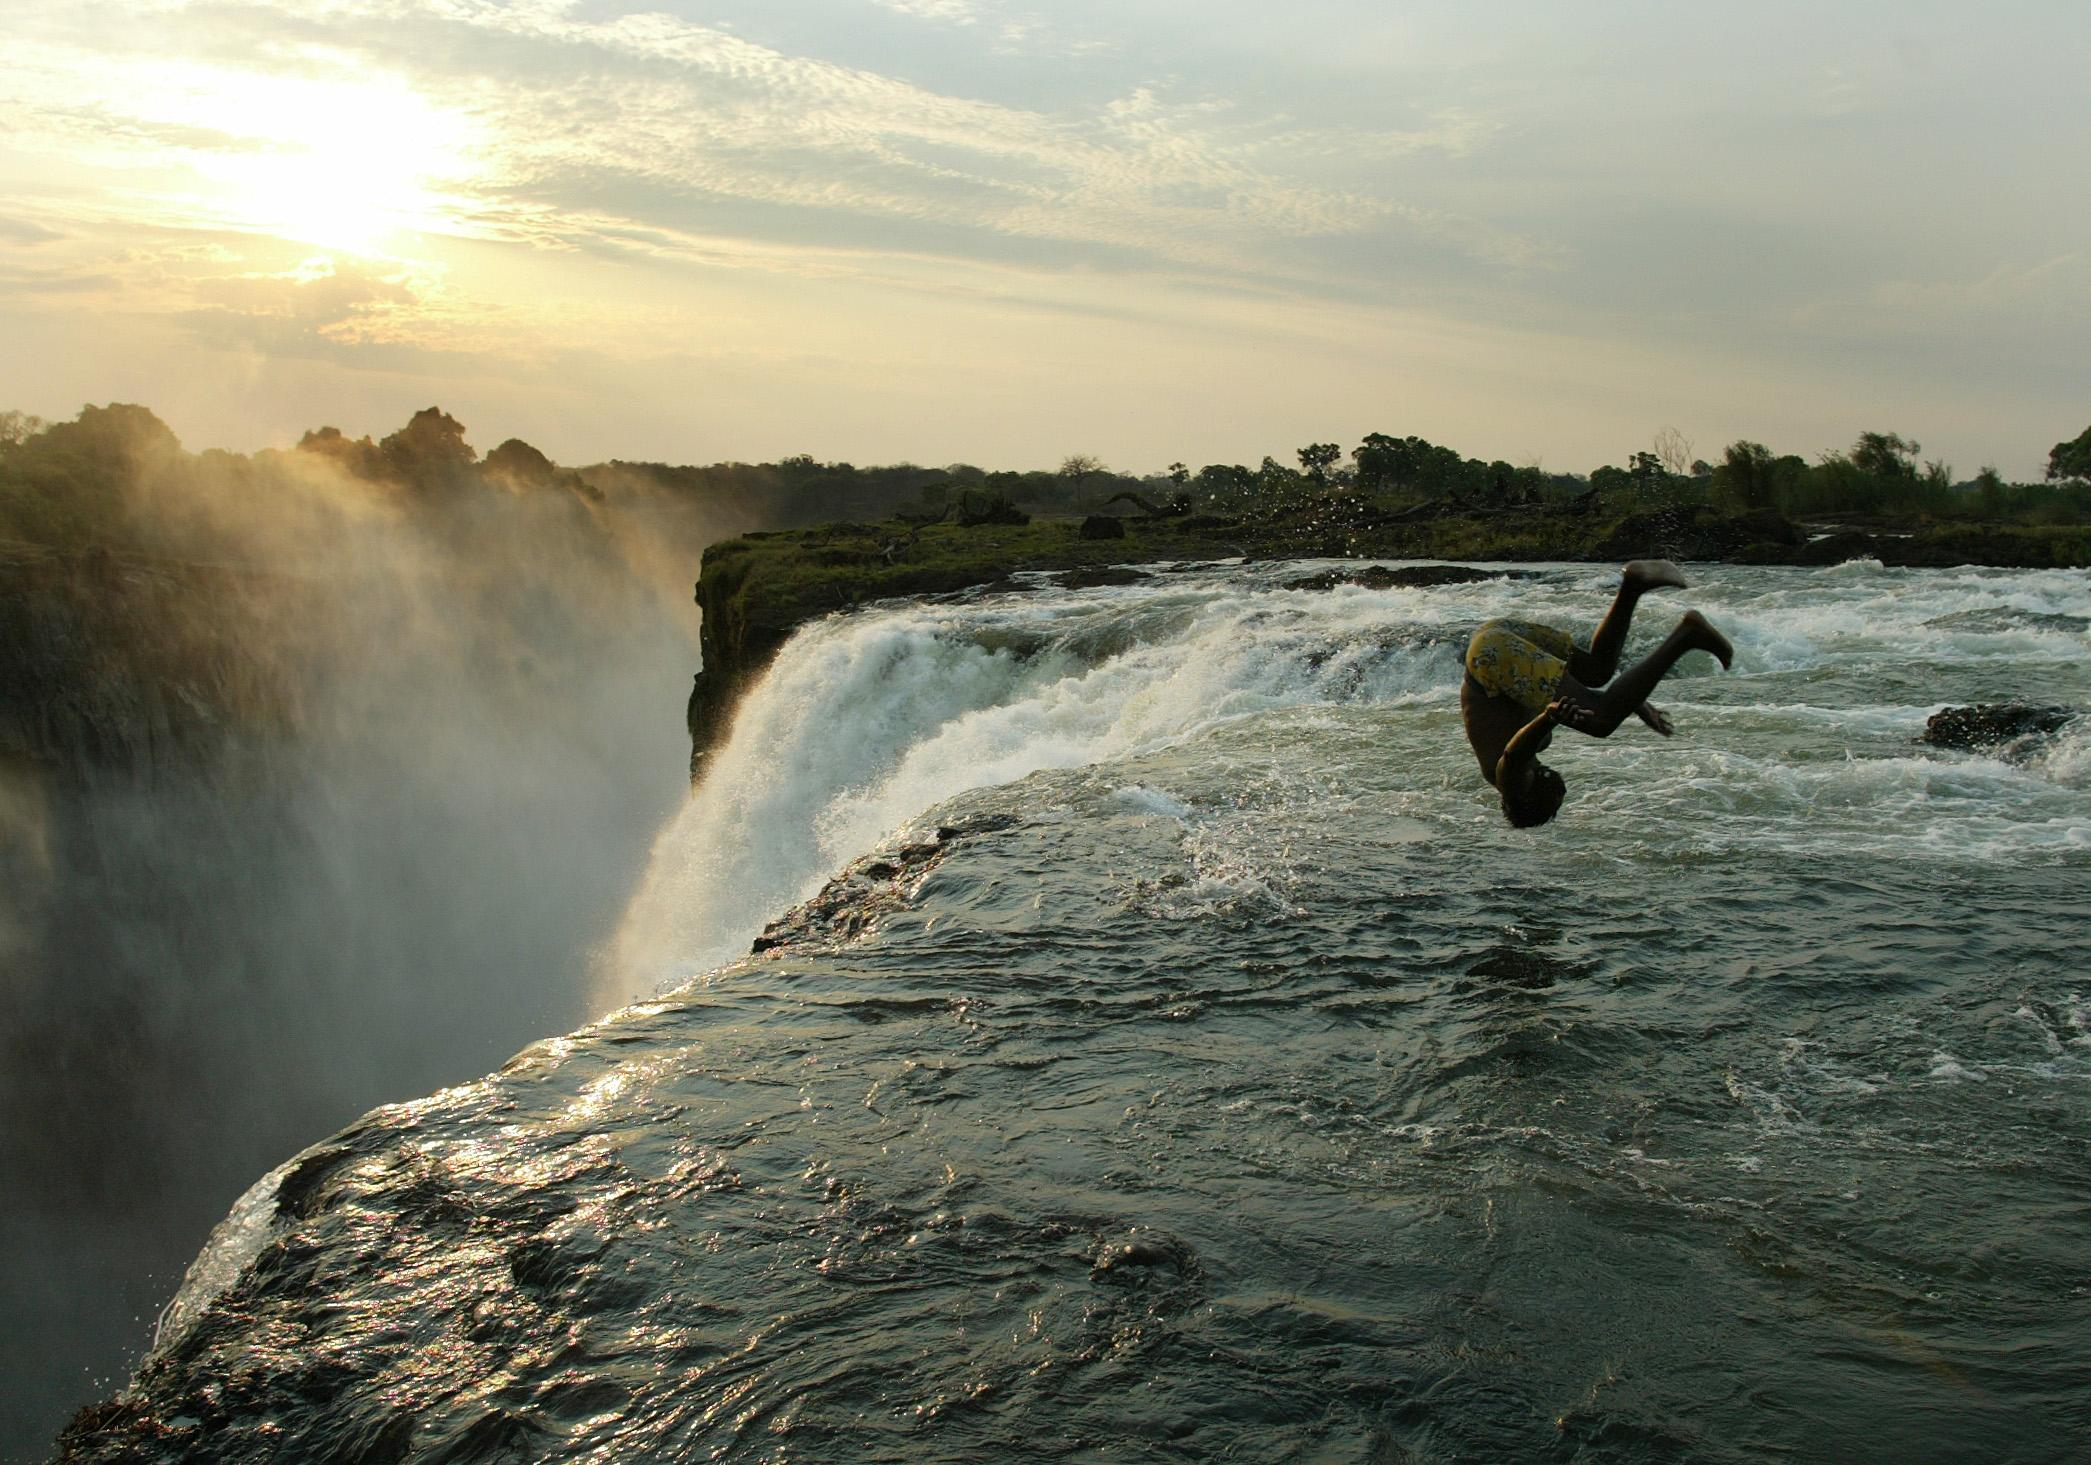 Zambian man somersaults into a pool at edge of Victoria Falls on the Zambezi River